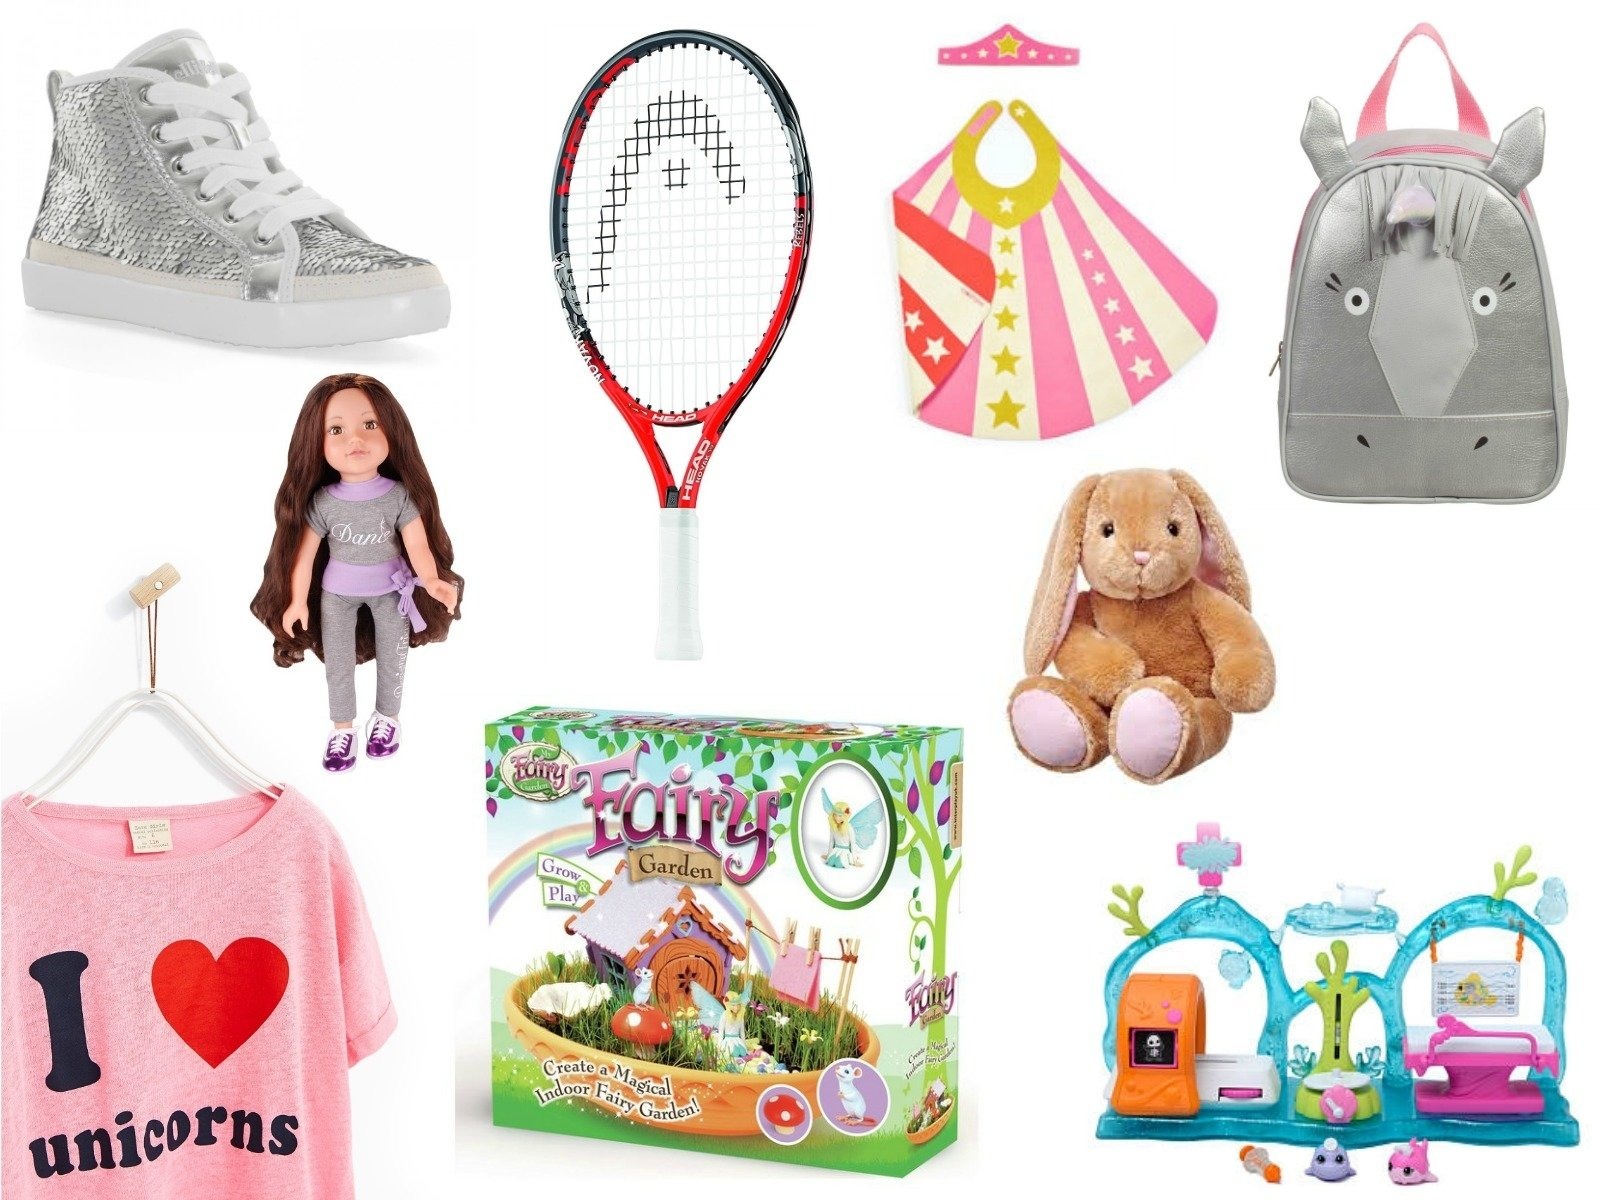 10 Great Gift Ideas For A 14 Year Old Girl presents for a five year old girl k elizabeth 5 2020